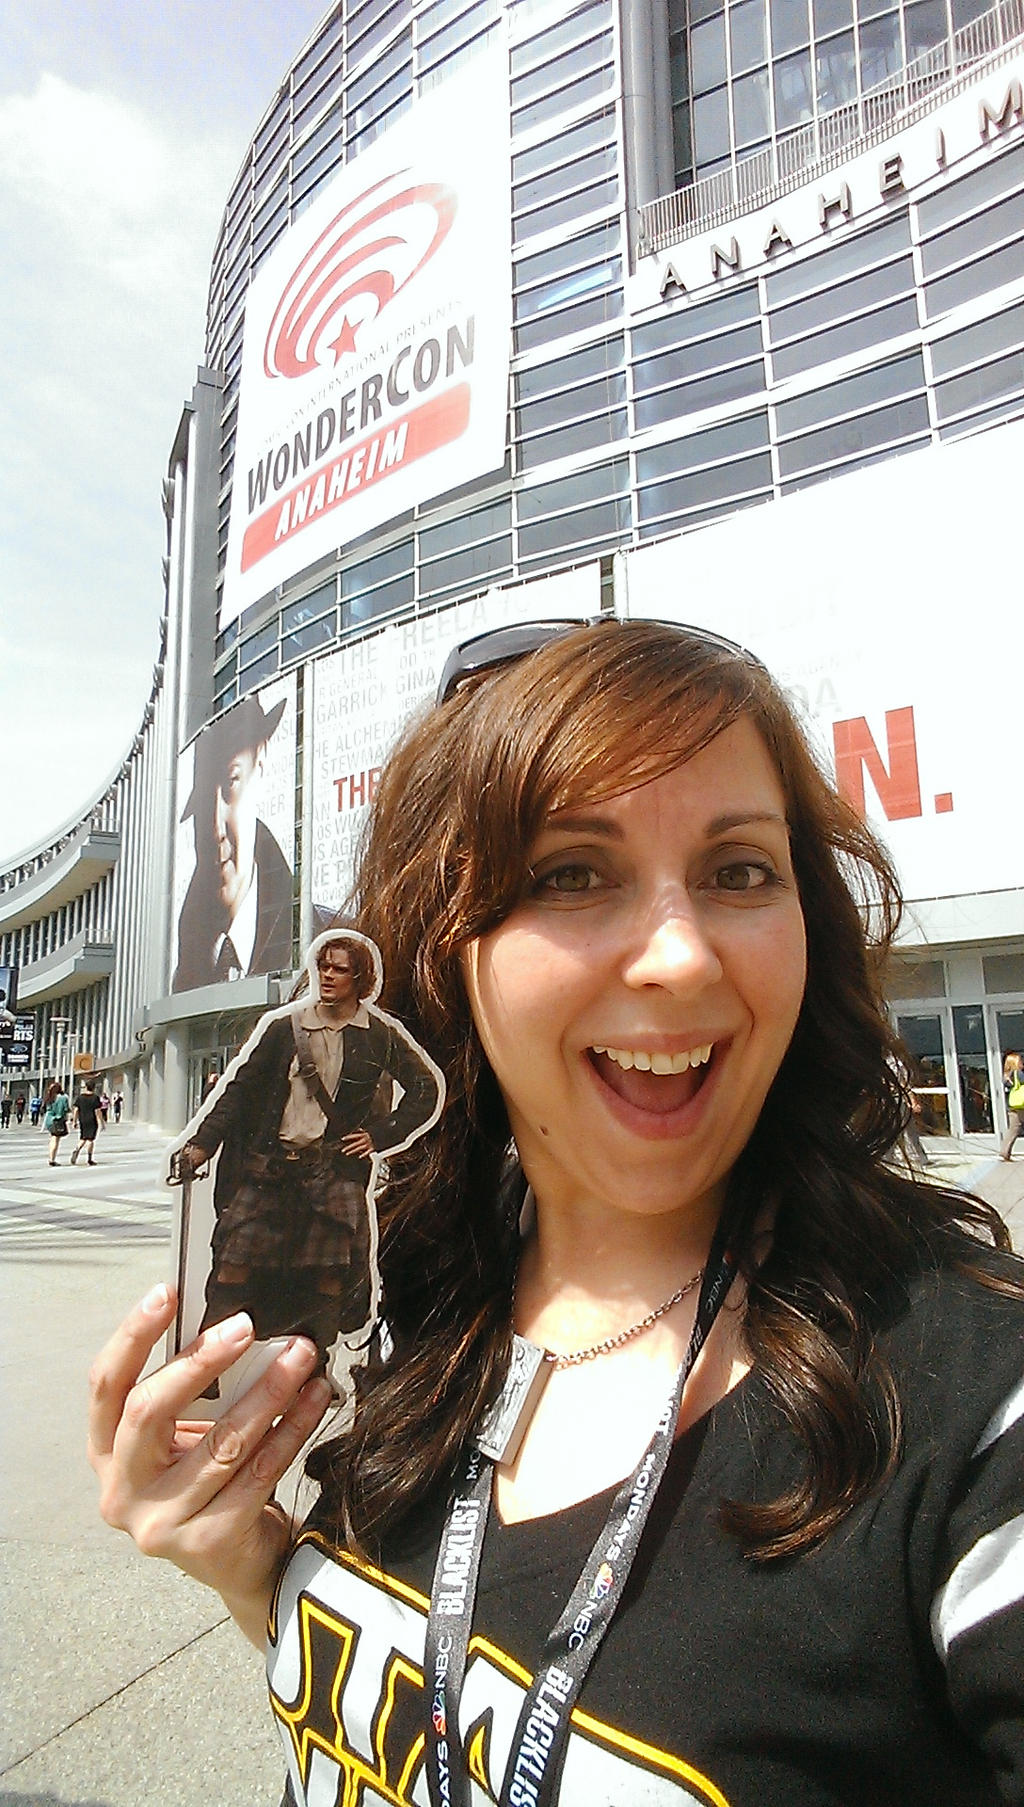 #PocketJaime and my humble self at WonderCon 2014 by IreneAdler76